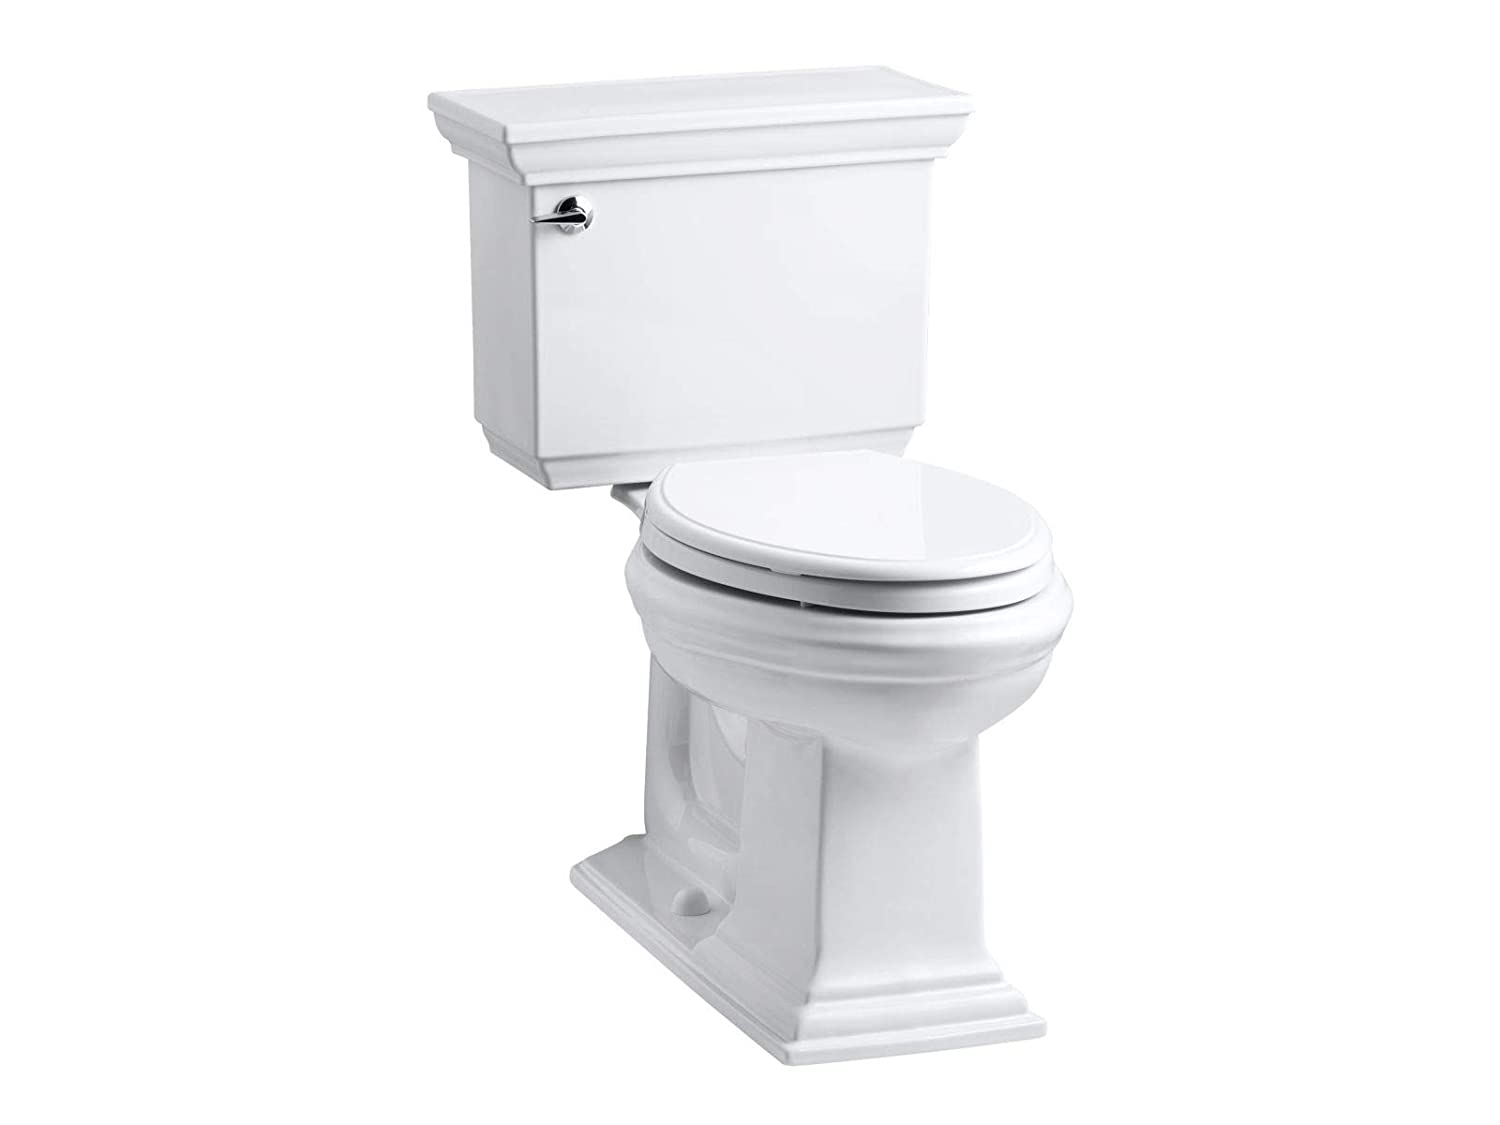 Best Toilets Under $200, $300 to $400 Reviews in 2020 11